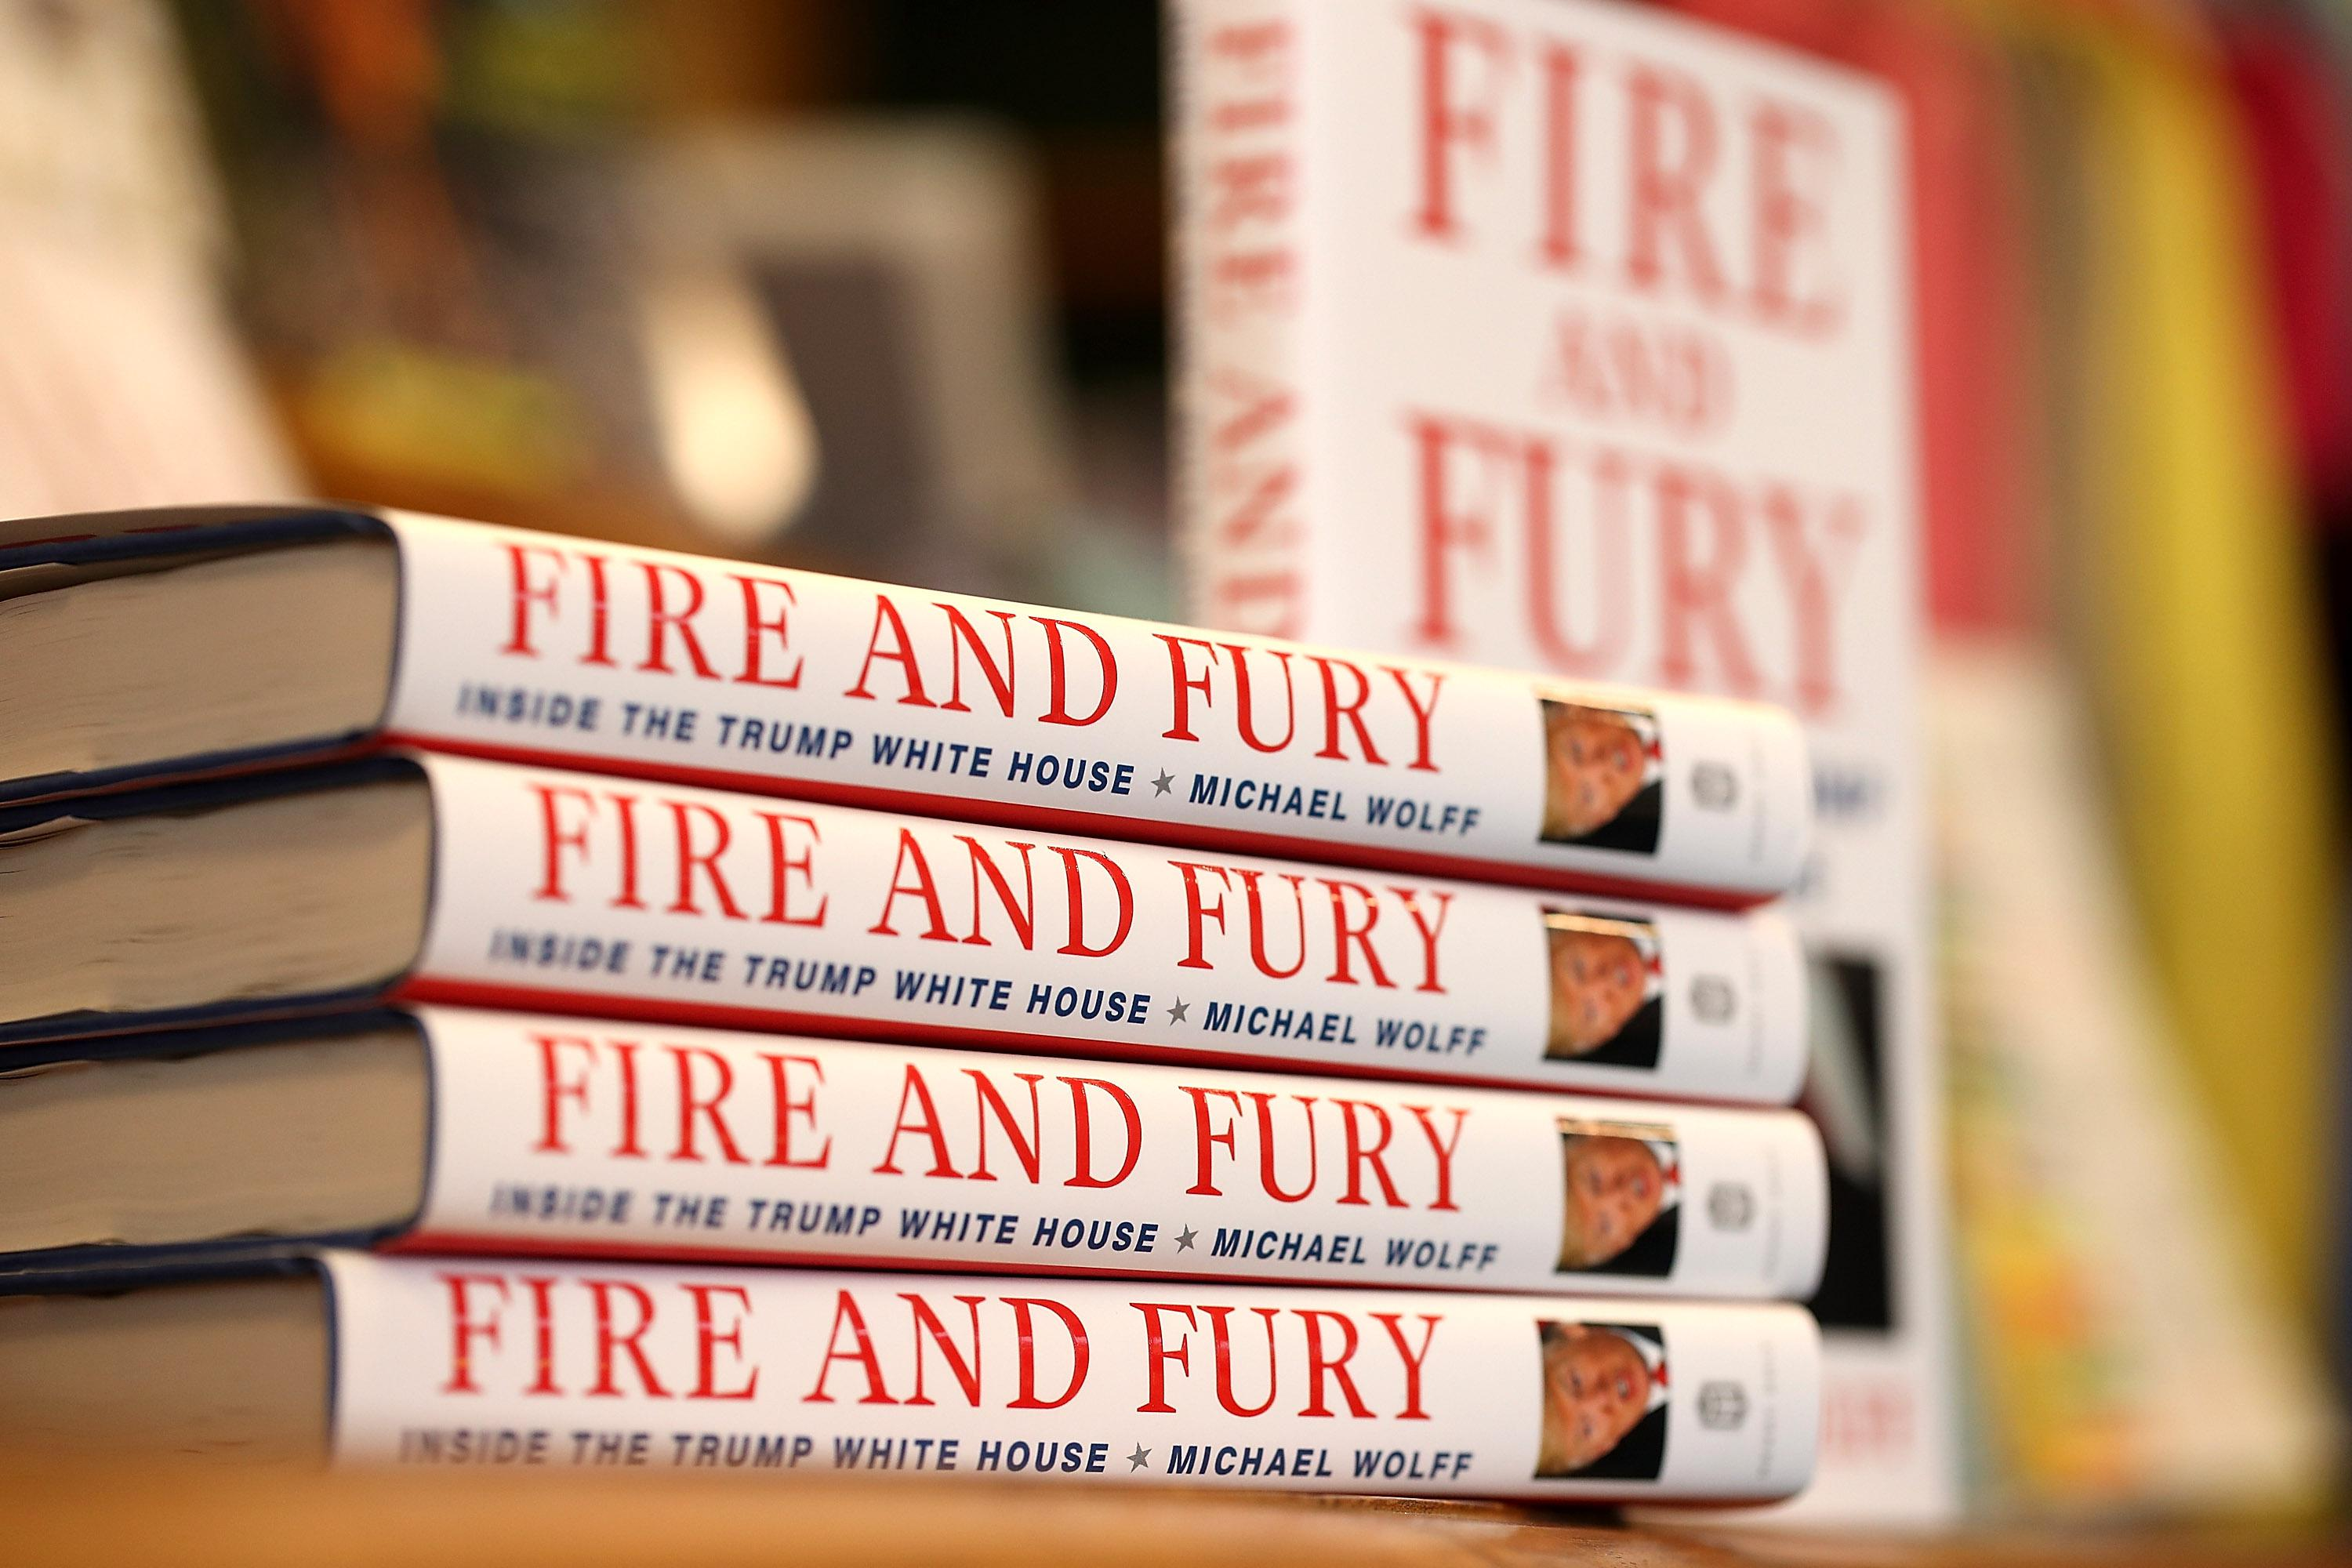 Copies of the book Fire and Fury by author Michael Wolff are displayed on a shelf at a bookstore